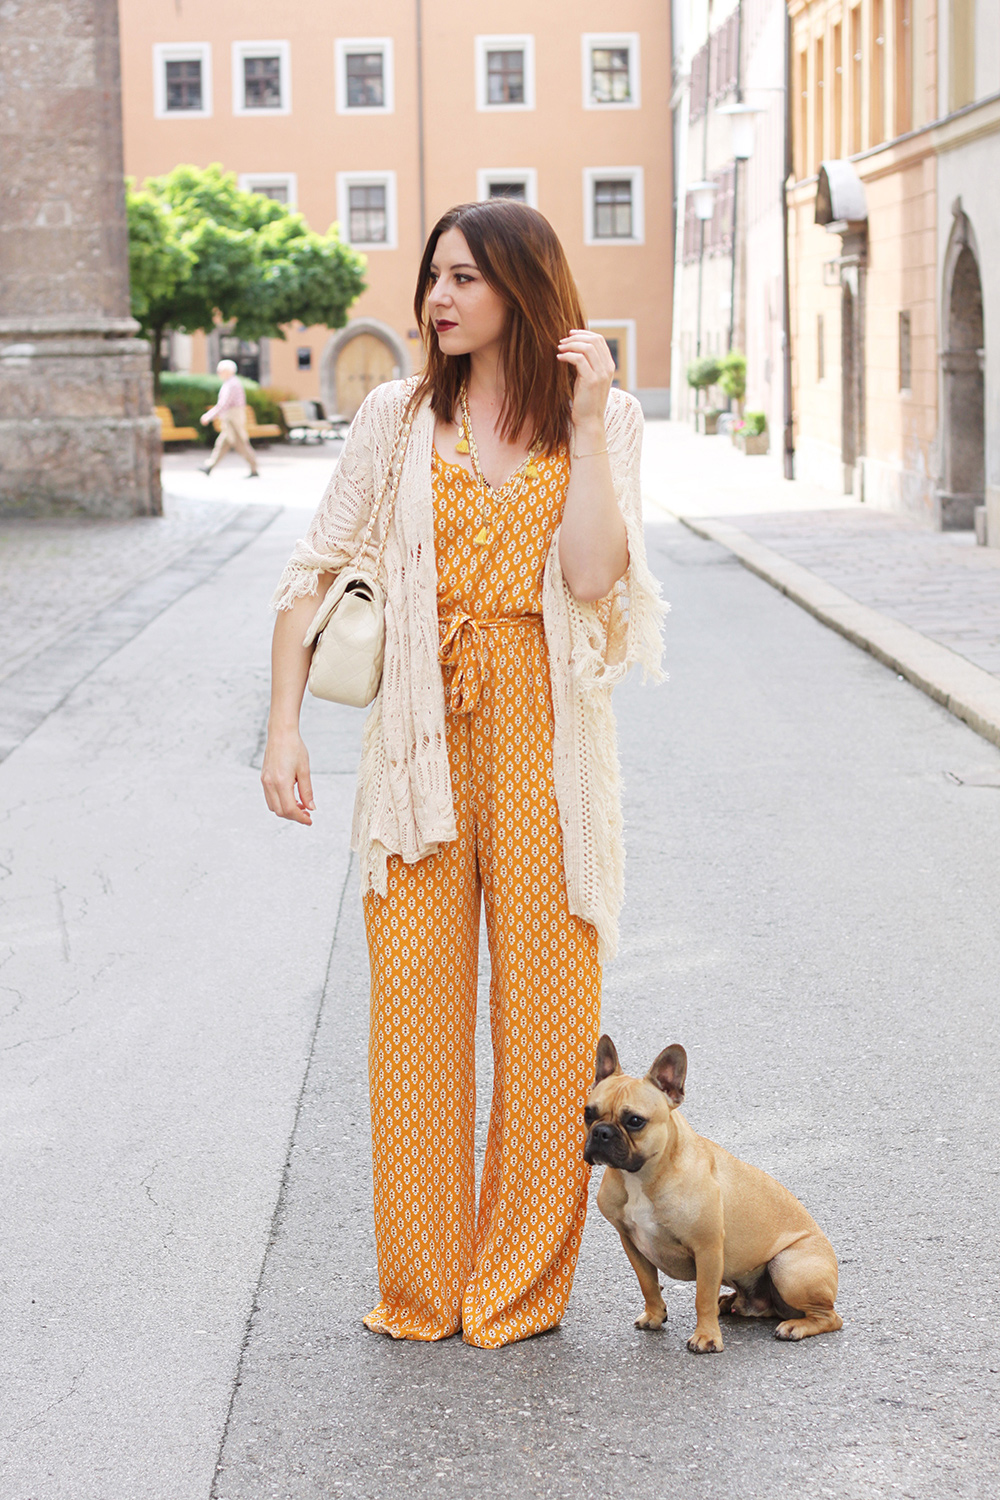 who is mocca, blog tirol, boho in the city, bohemian, hippie, chic, frenchie, jumpsuit, palazzo hose, mango, kimono, fransen, chanel jumbo beige 2.55, innsbruck, tirolblog, how to wear, how to style, wie kombinieren, whoismocca.com